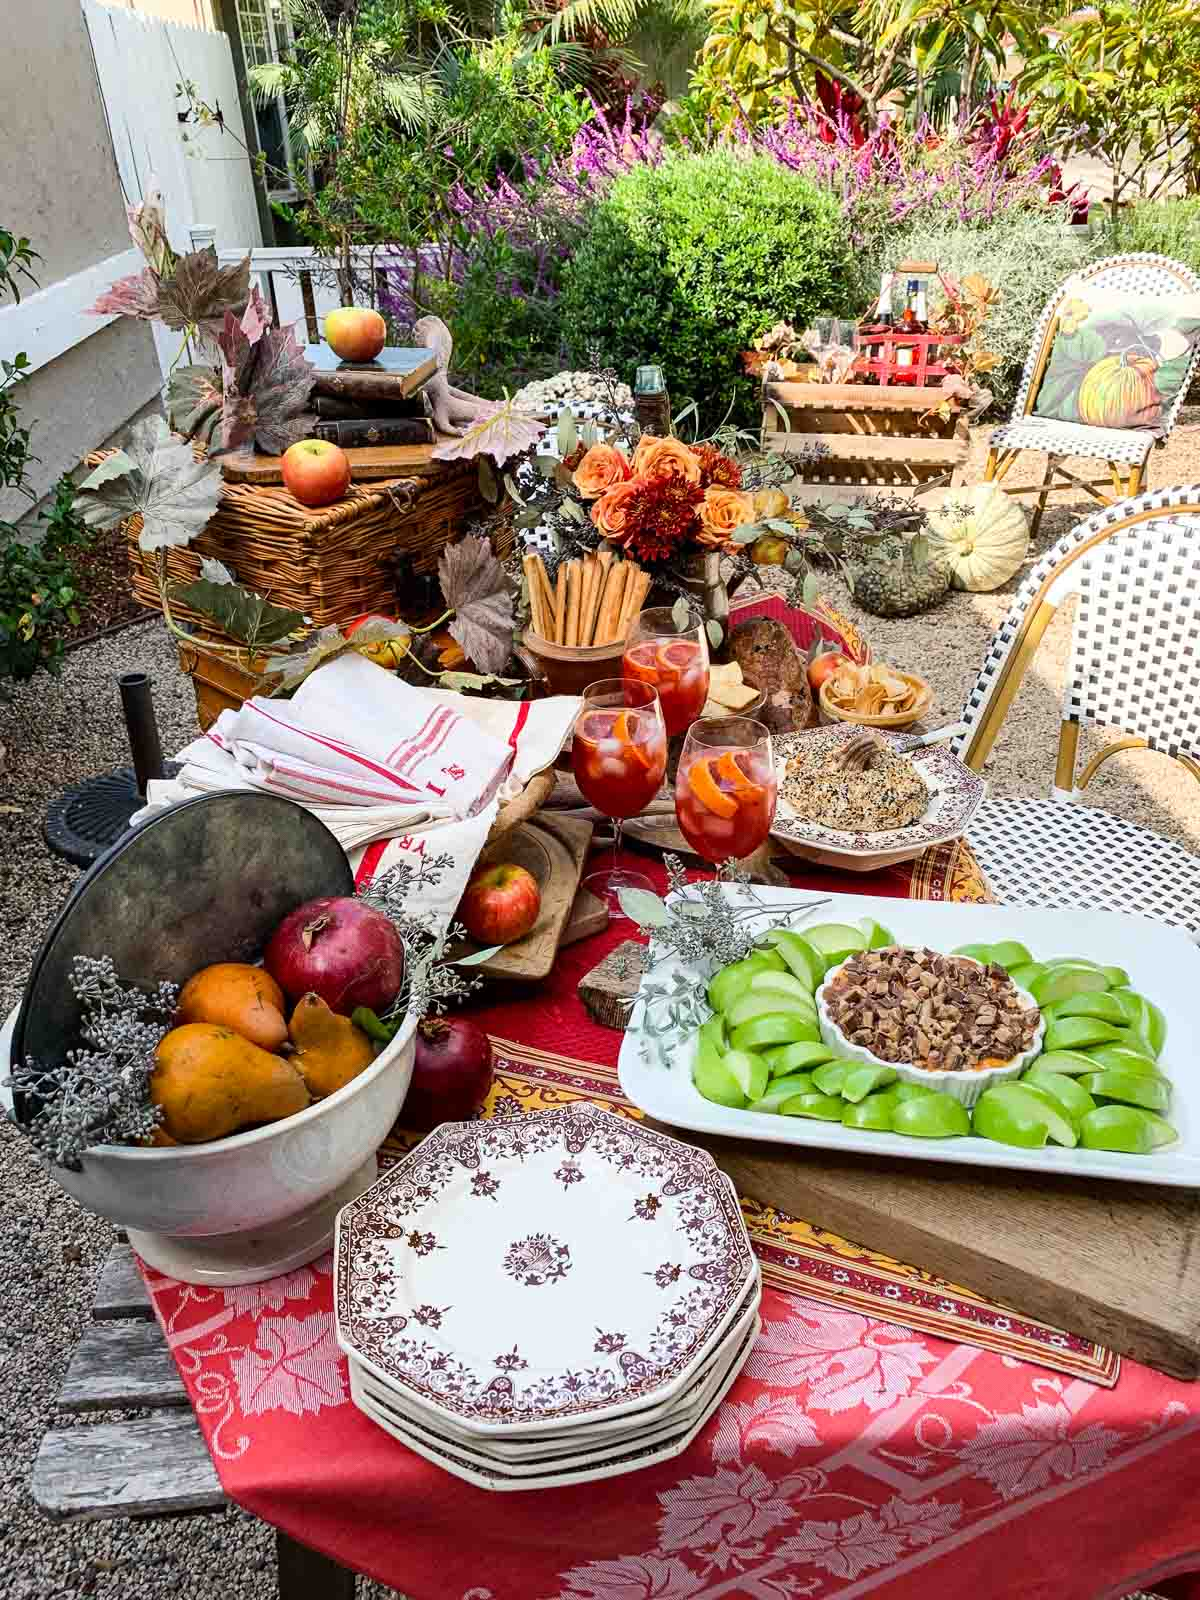 A gorgeous Fall table with French printed red linens and bright colored appetizers featuring and caramel apple dip, pumpkin shaped everything bagel cheese ball, and aperol cocktails at a Fall appetizer outdoor party.